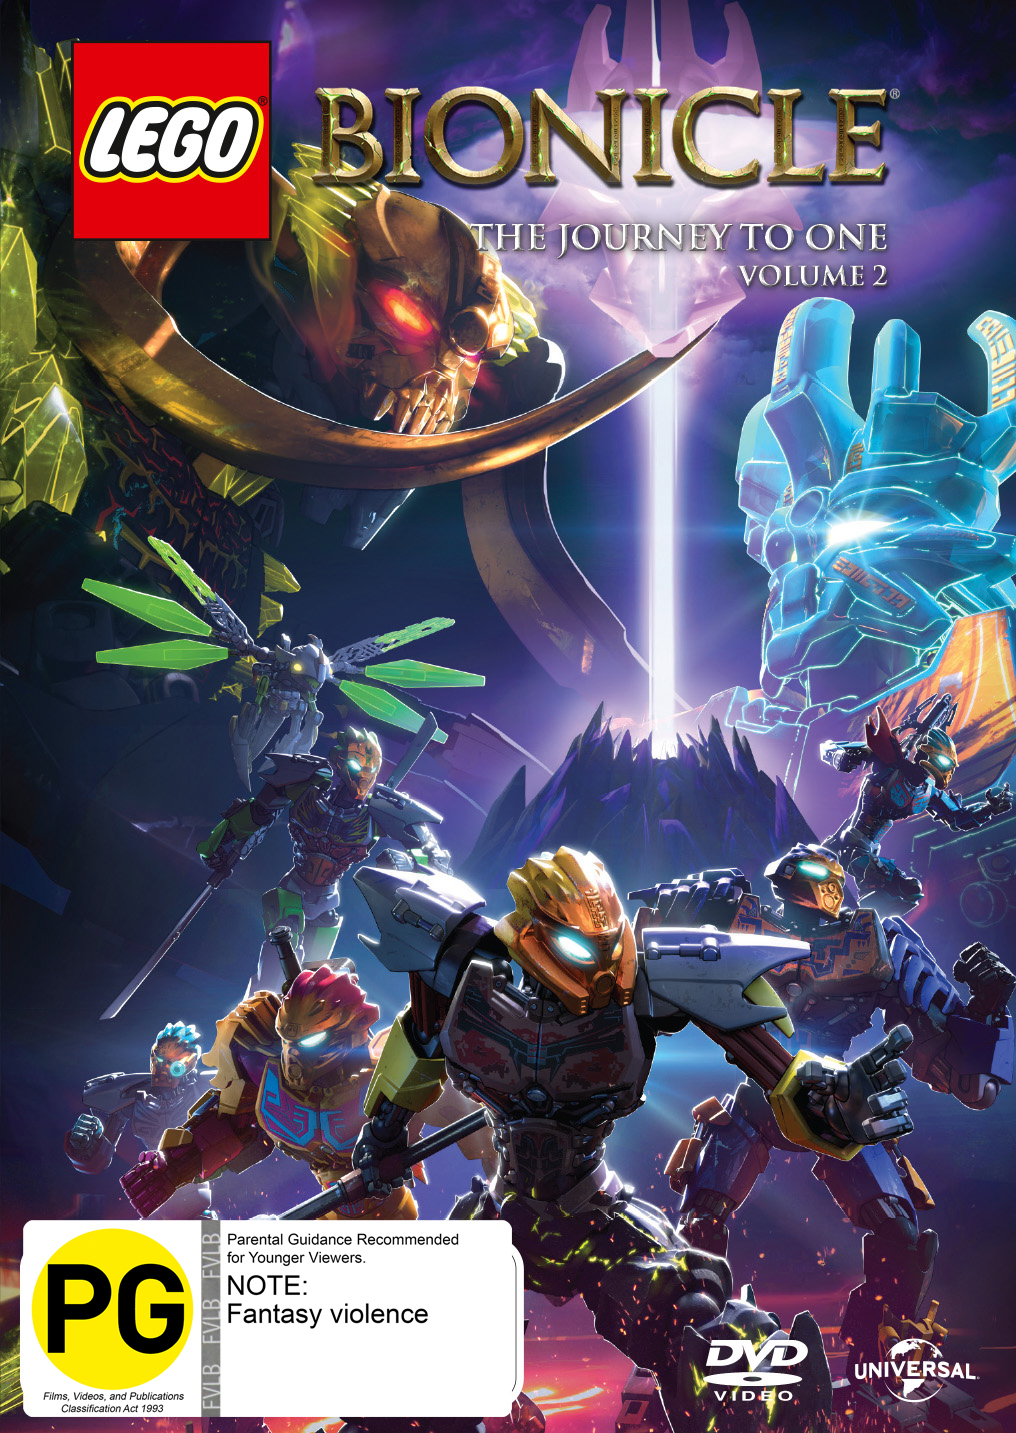 Lego Bionicle The Journey To One